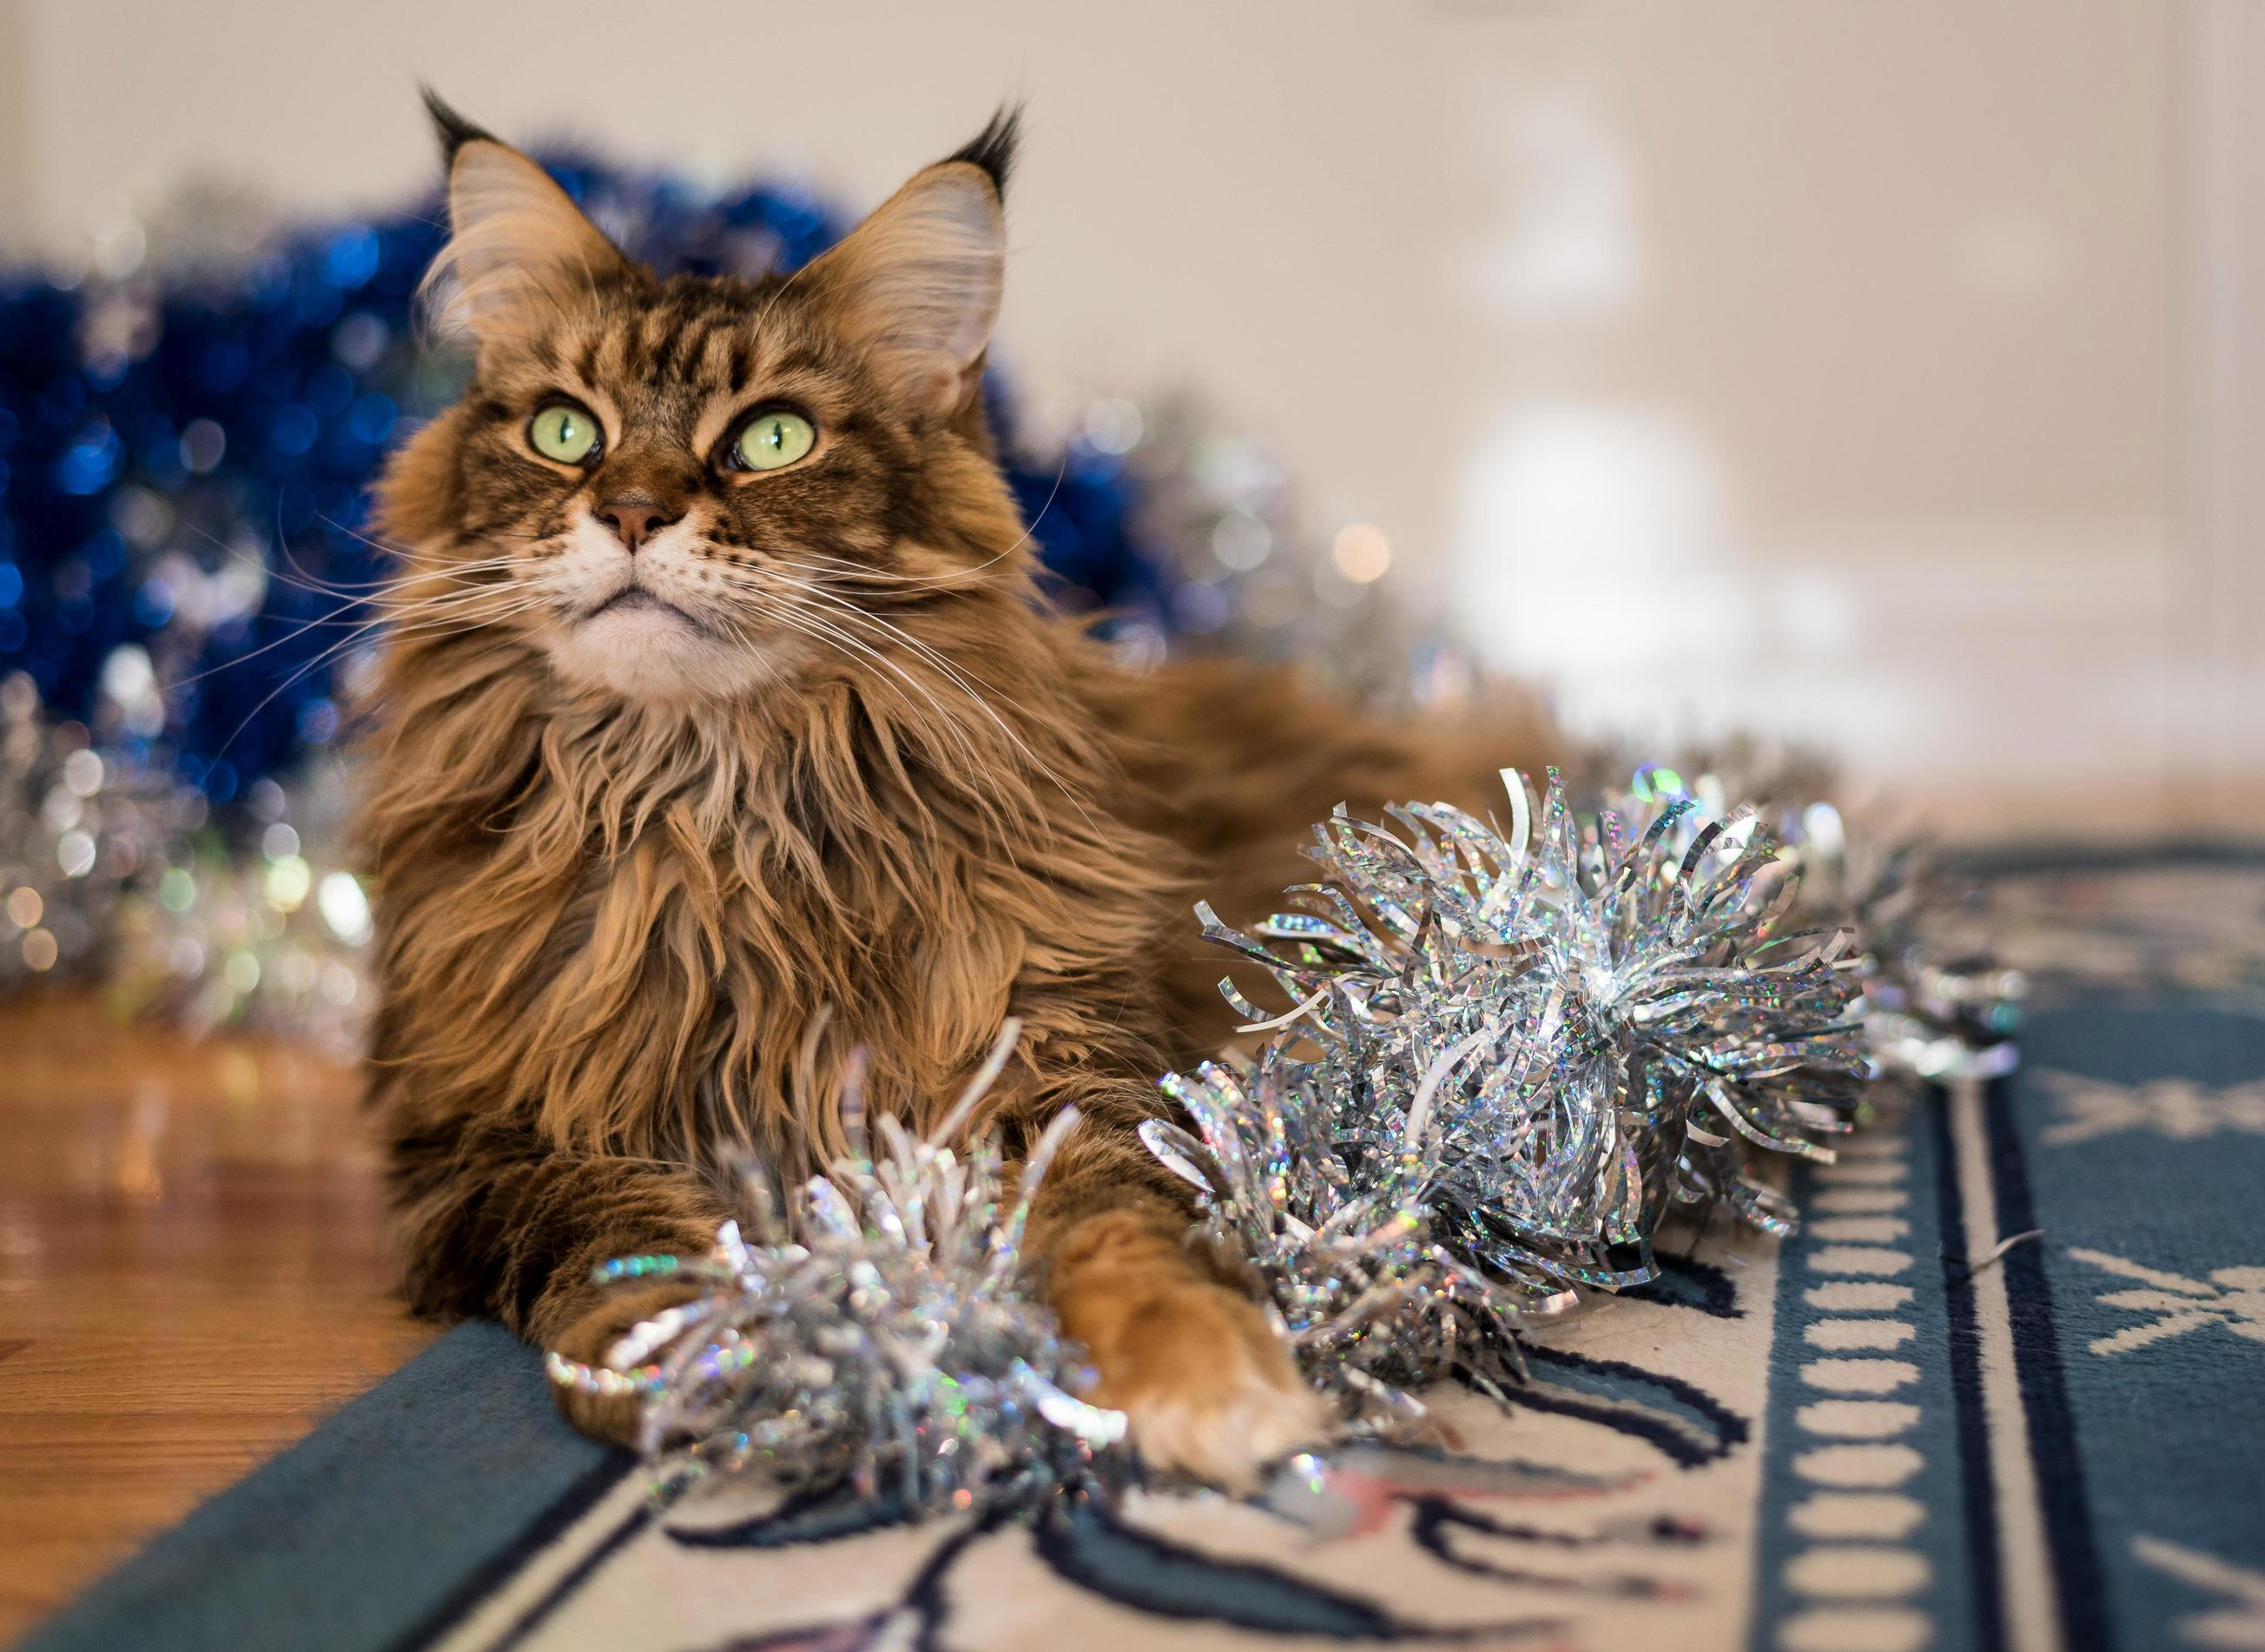 Our tinsel princess has been helping us take decorations down.